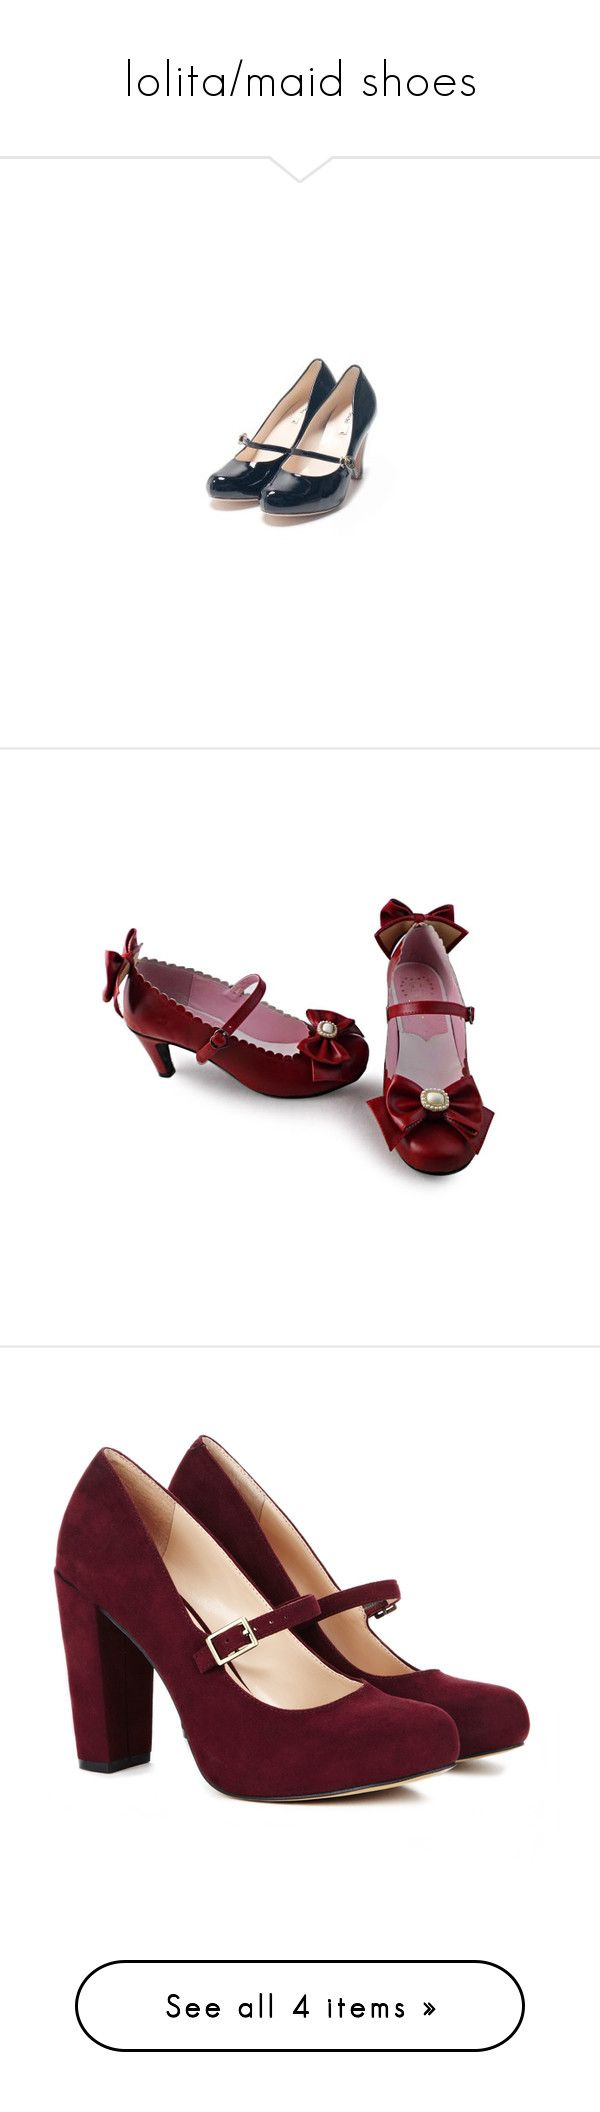 """""""lolita/maid shoes"""" by tyuionki ❤ liked on Polyvore featuring shoes, lolita, heels, red, red shoes, cos shoes, pumps, sapatos, burgundy and burgundy pumps"""